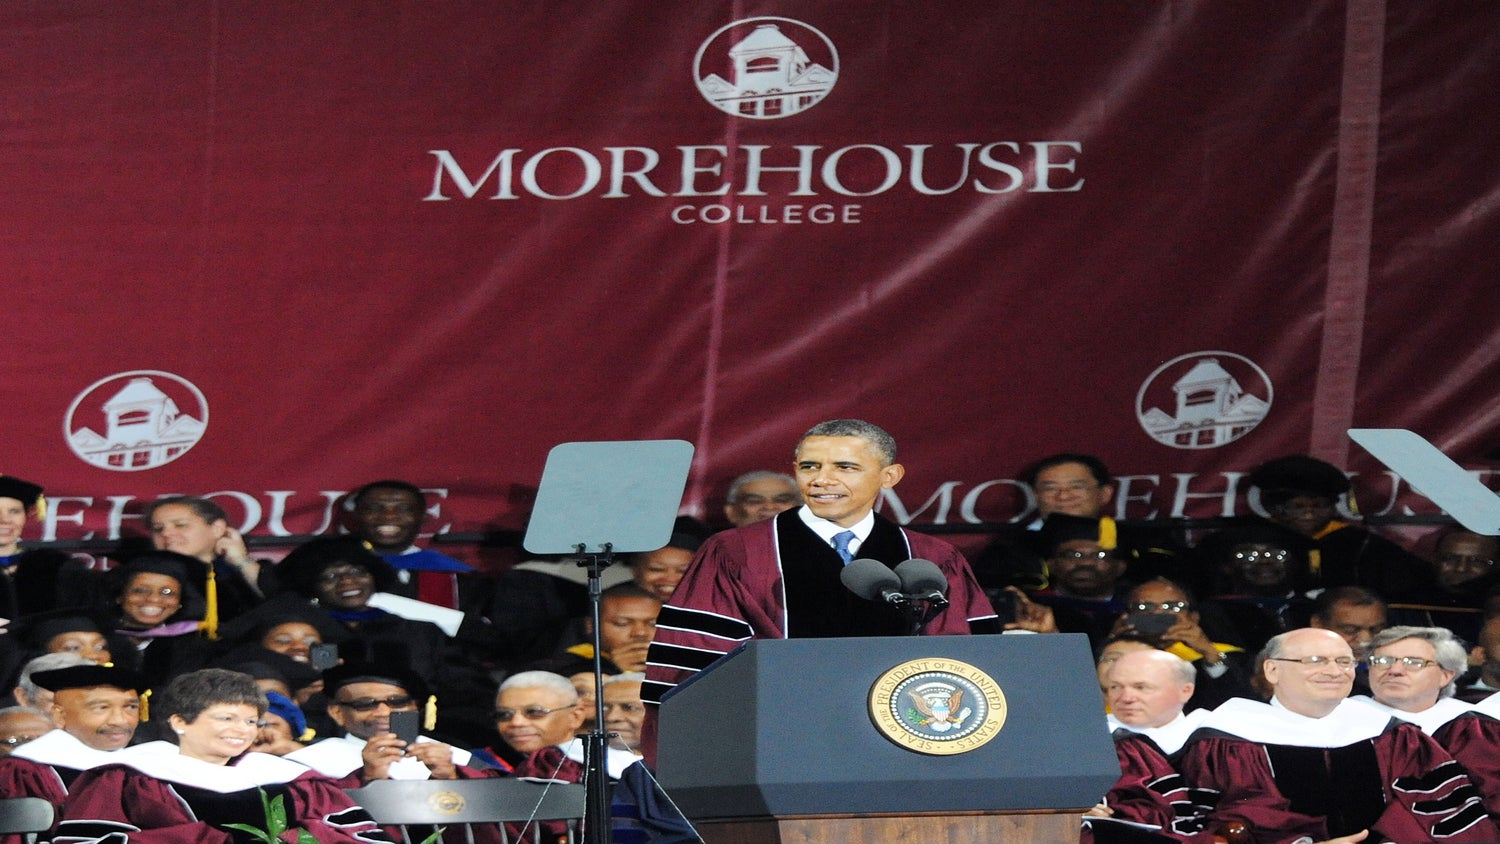 Must-See: Watch the President and First Lady's Graduation Speeches